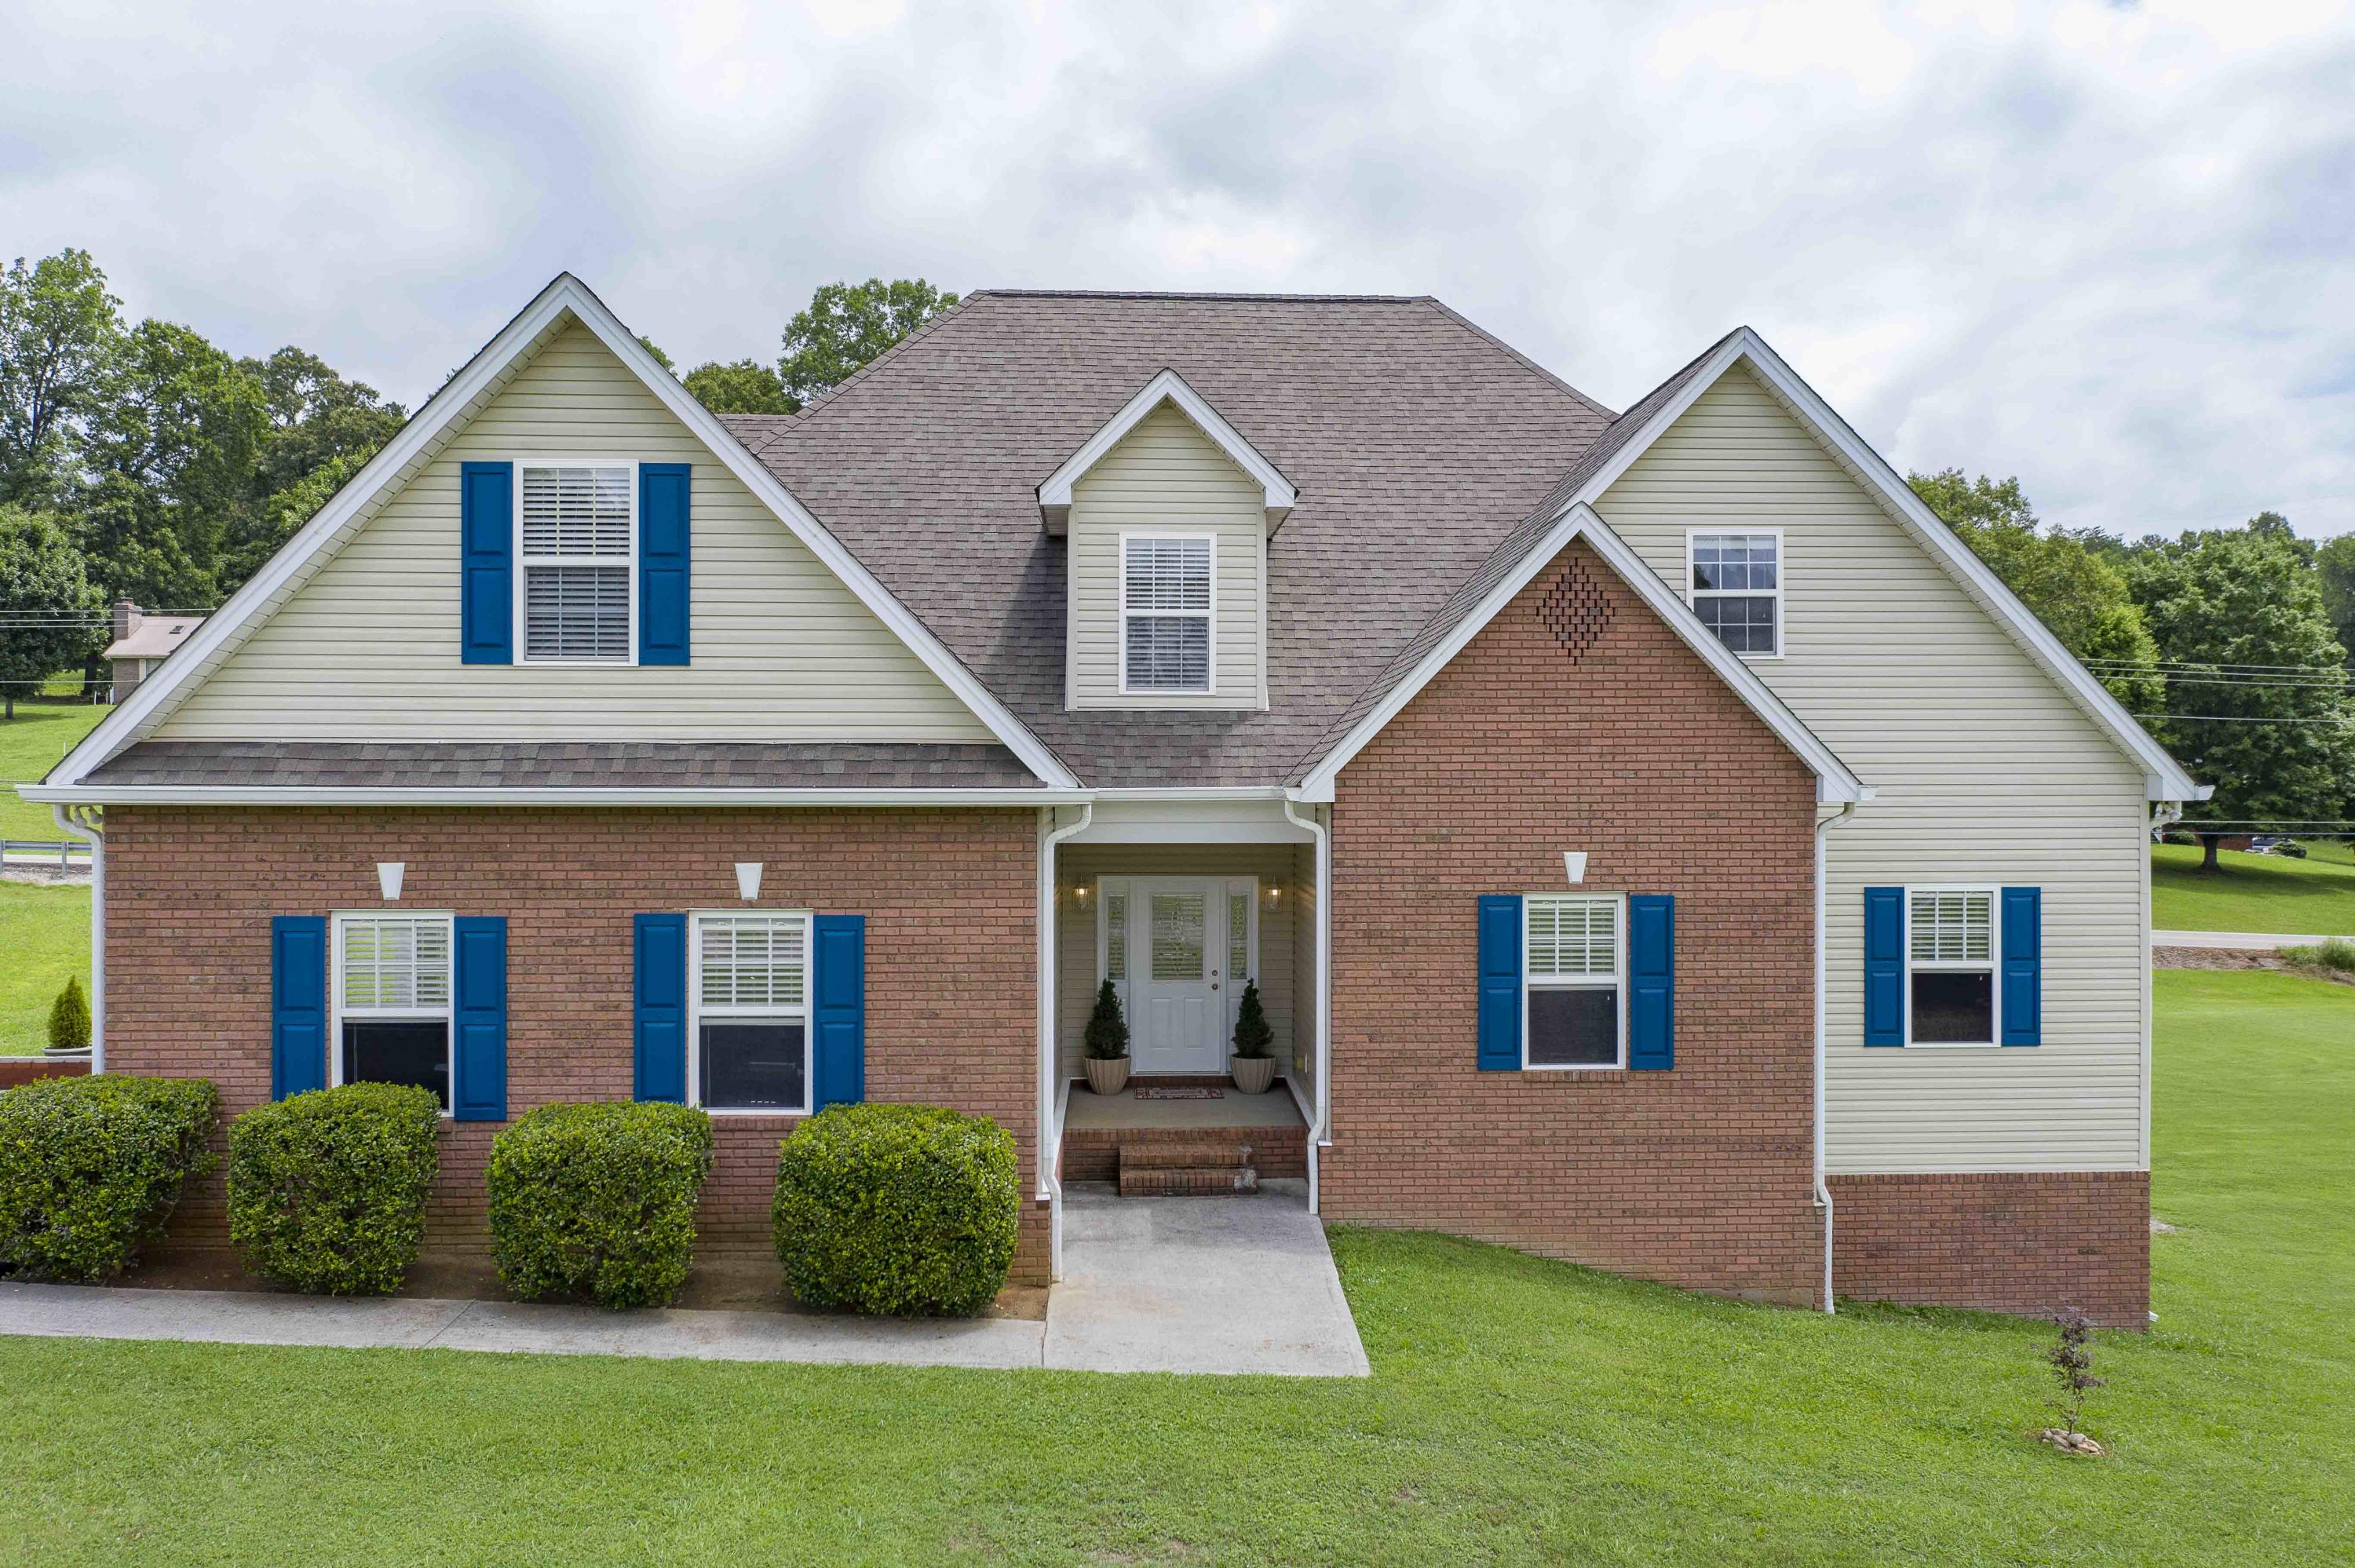 142 Raspberry, New Market, Tennessee, United States 37820, 3 Bedrooms Bedrooms, ,3 BathroomsBathrooms,Single Family,For Sale,Raspberry,1122206